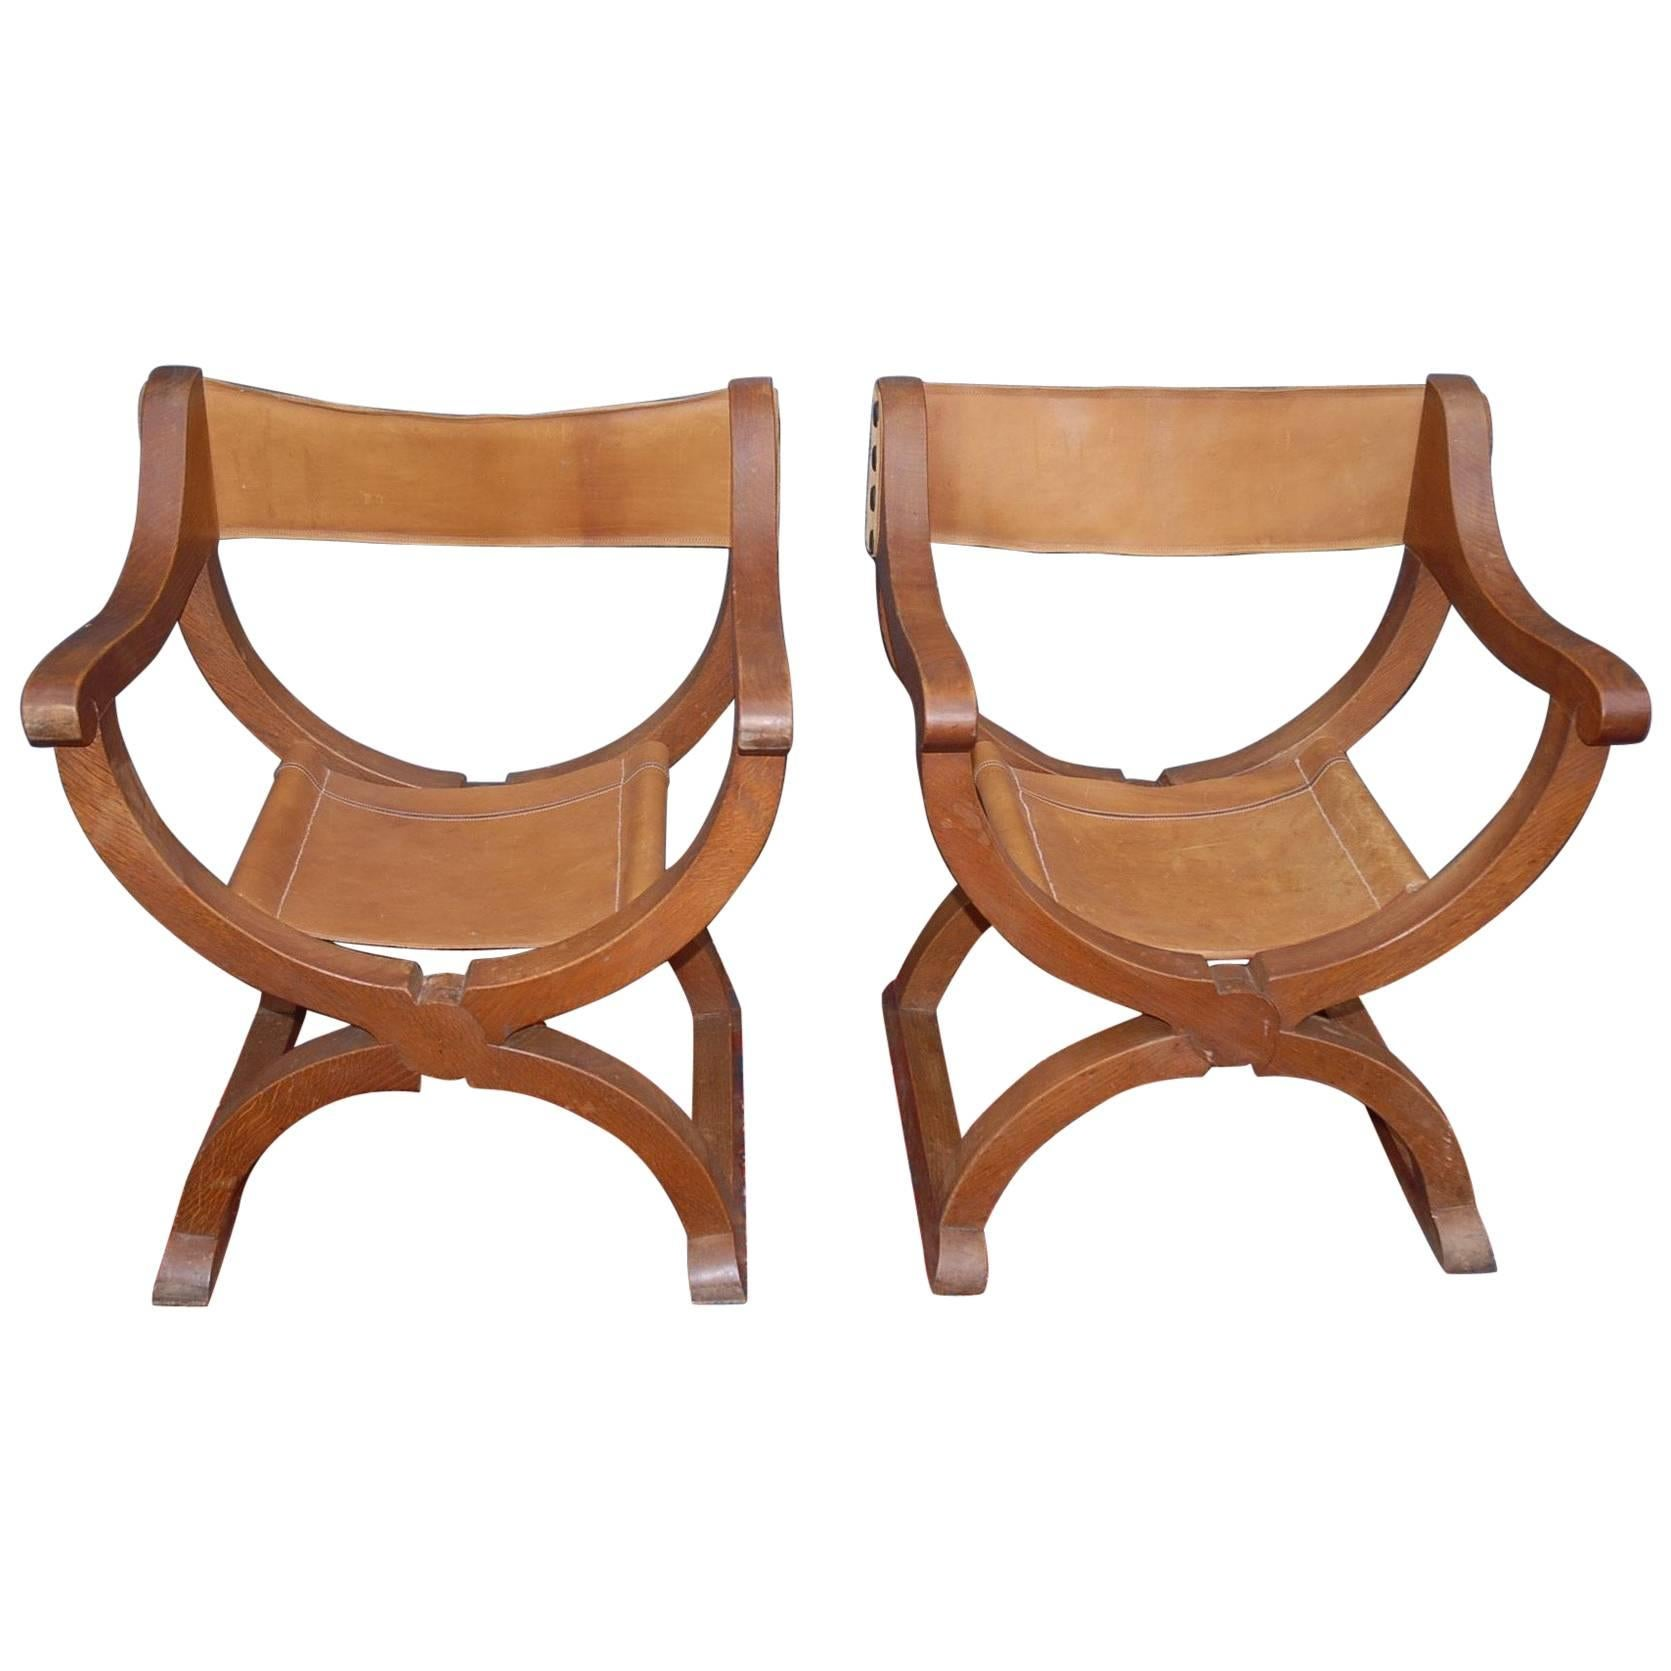 Rare Midcentury Pair Oak X-frame Dagobert Armchairs with Leather Seats and Back